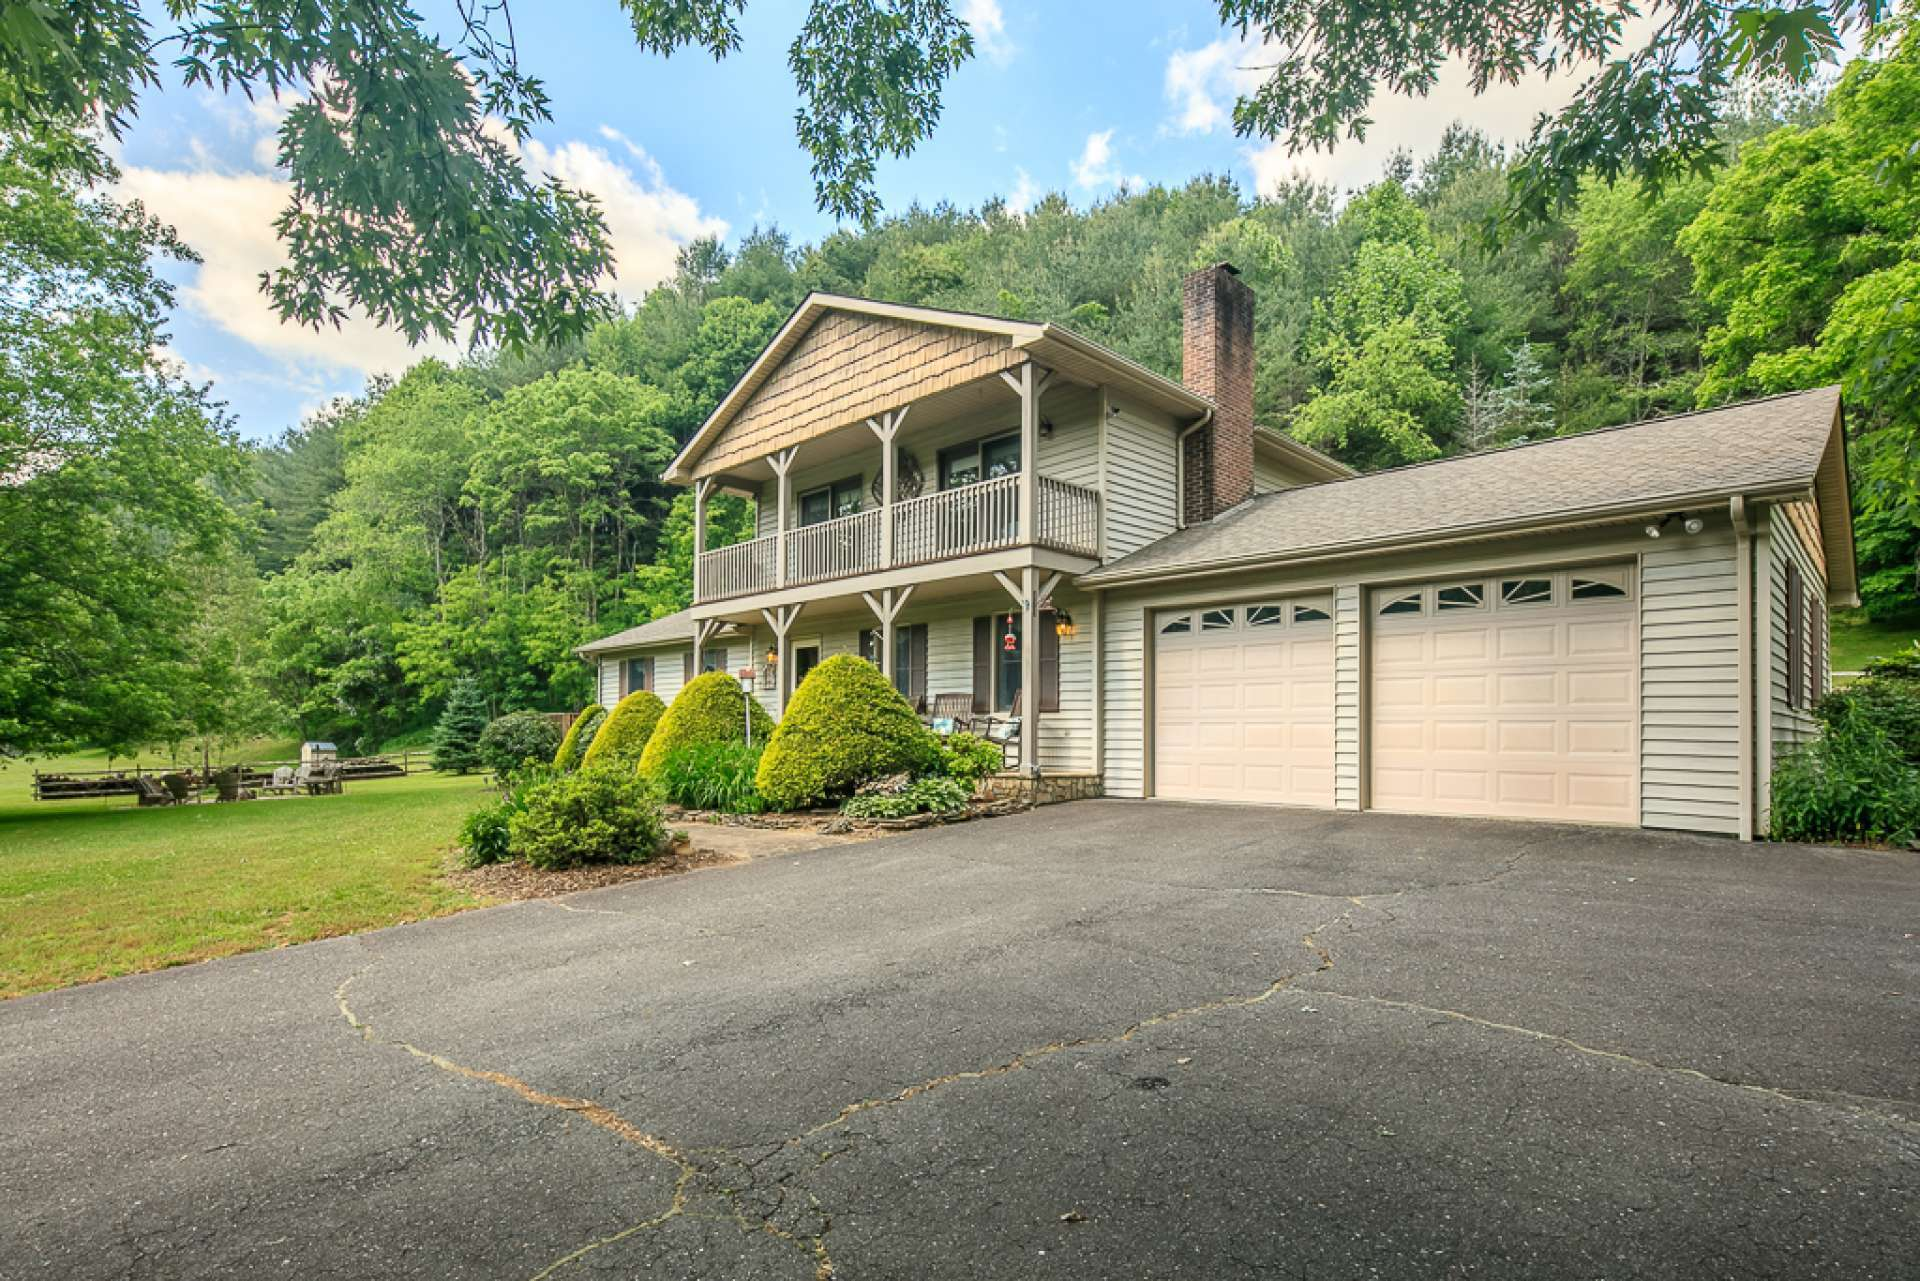 This property offers abundant parking space, including a 2-car garage.